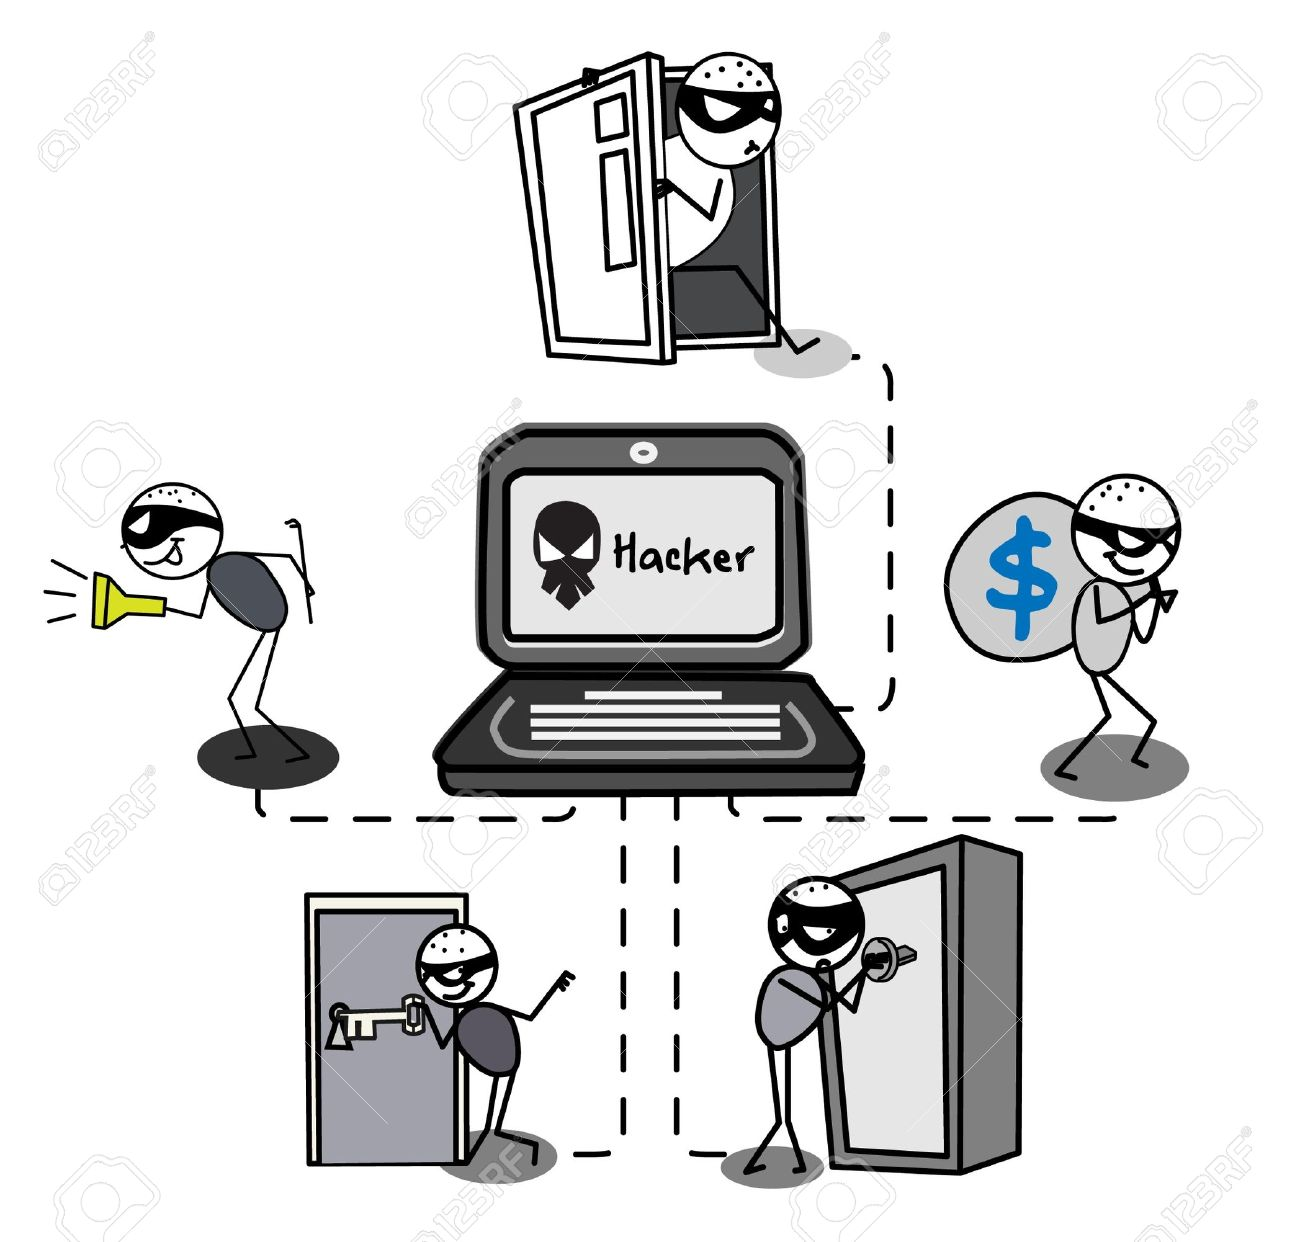 5,367 Cyber Crime Stock Vector Illustration And Royalty Free Cyber.